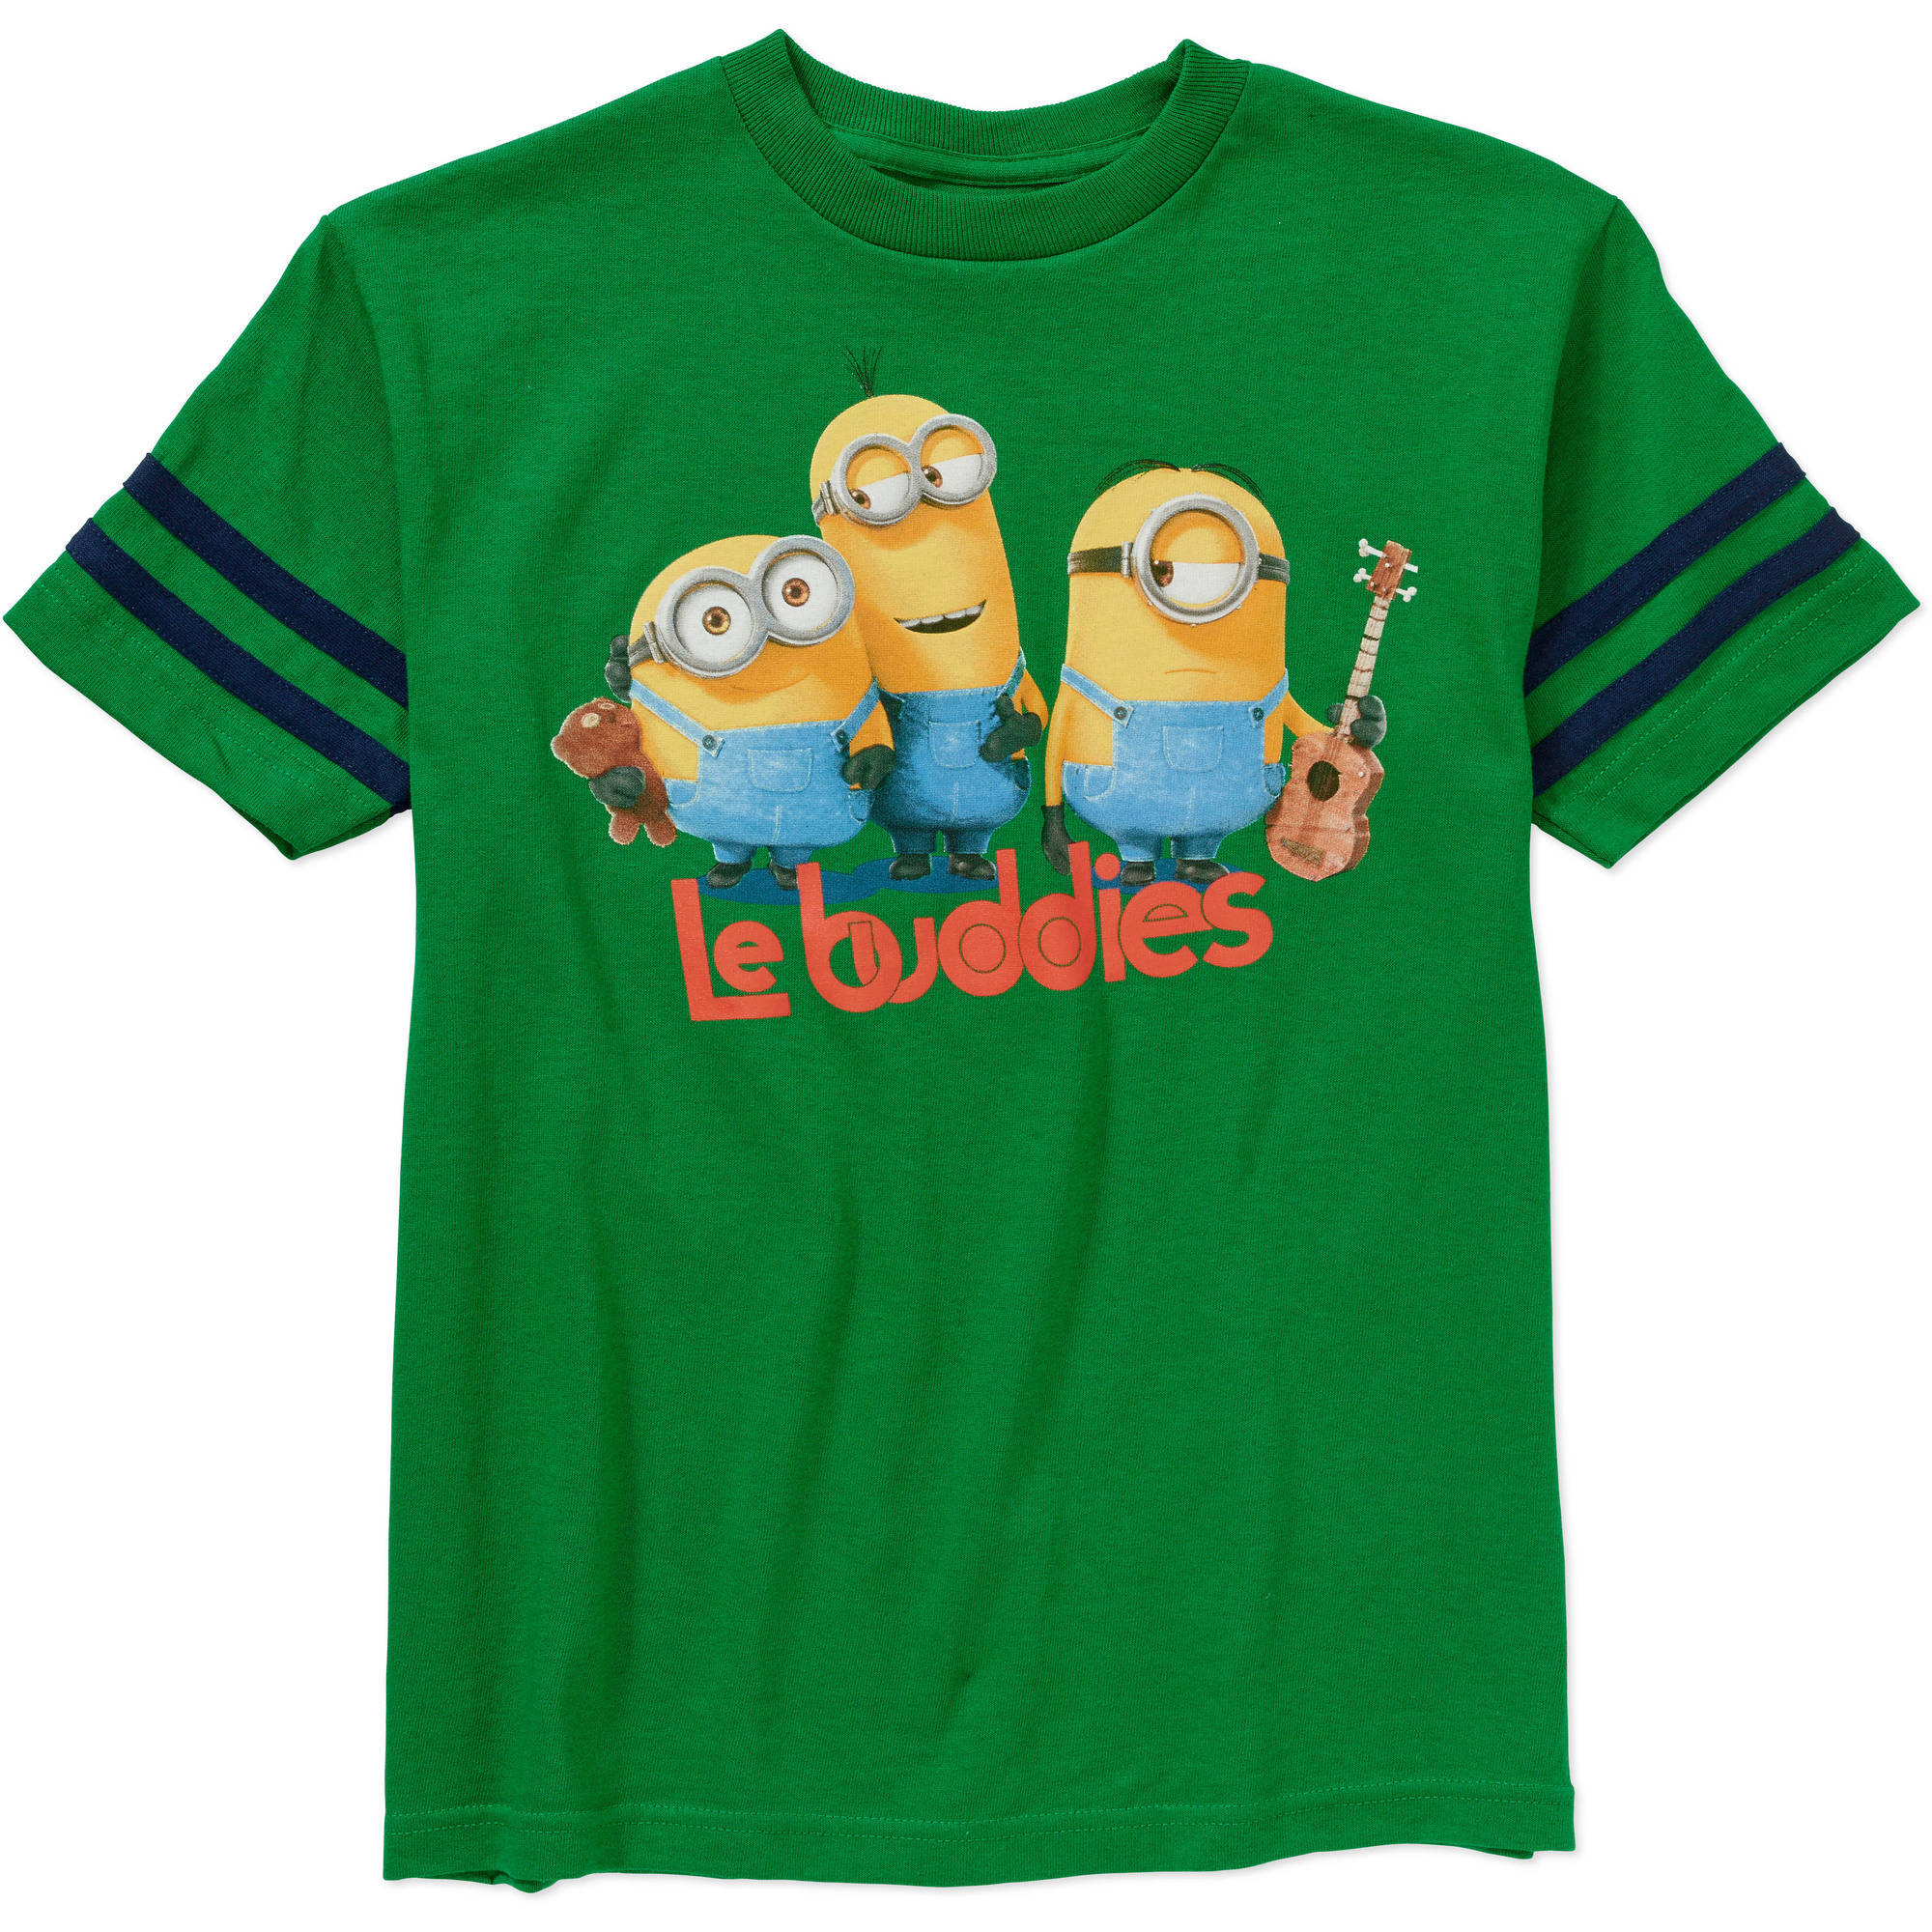 Minions Boys' Le Buddies Graphic Tee